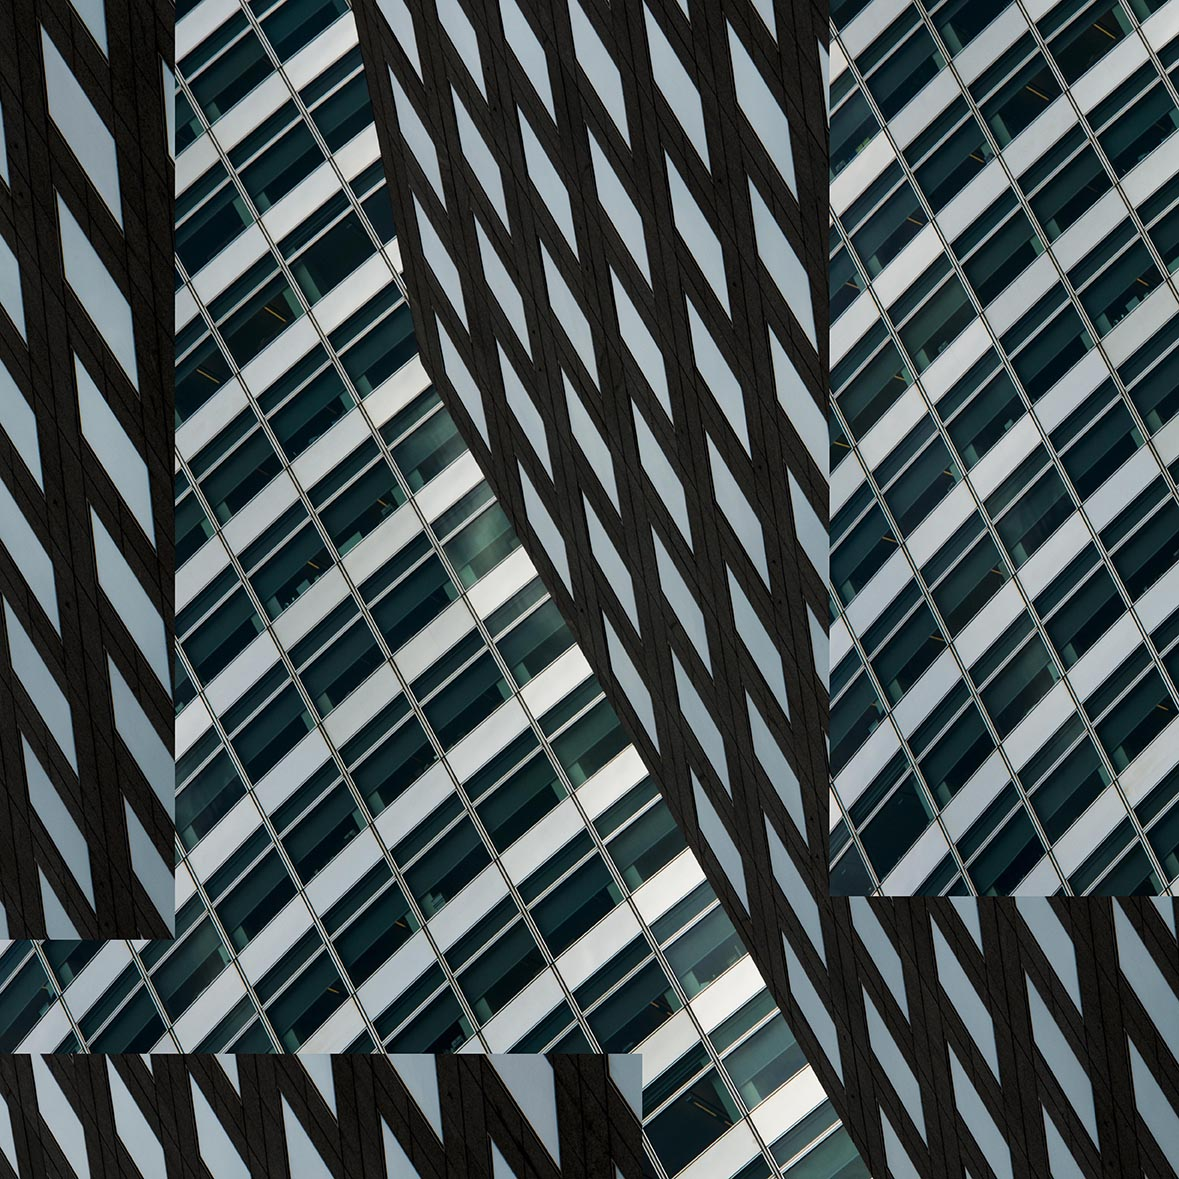 Building V, 2016, Photography printed on metal, 30 x 30 inches